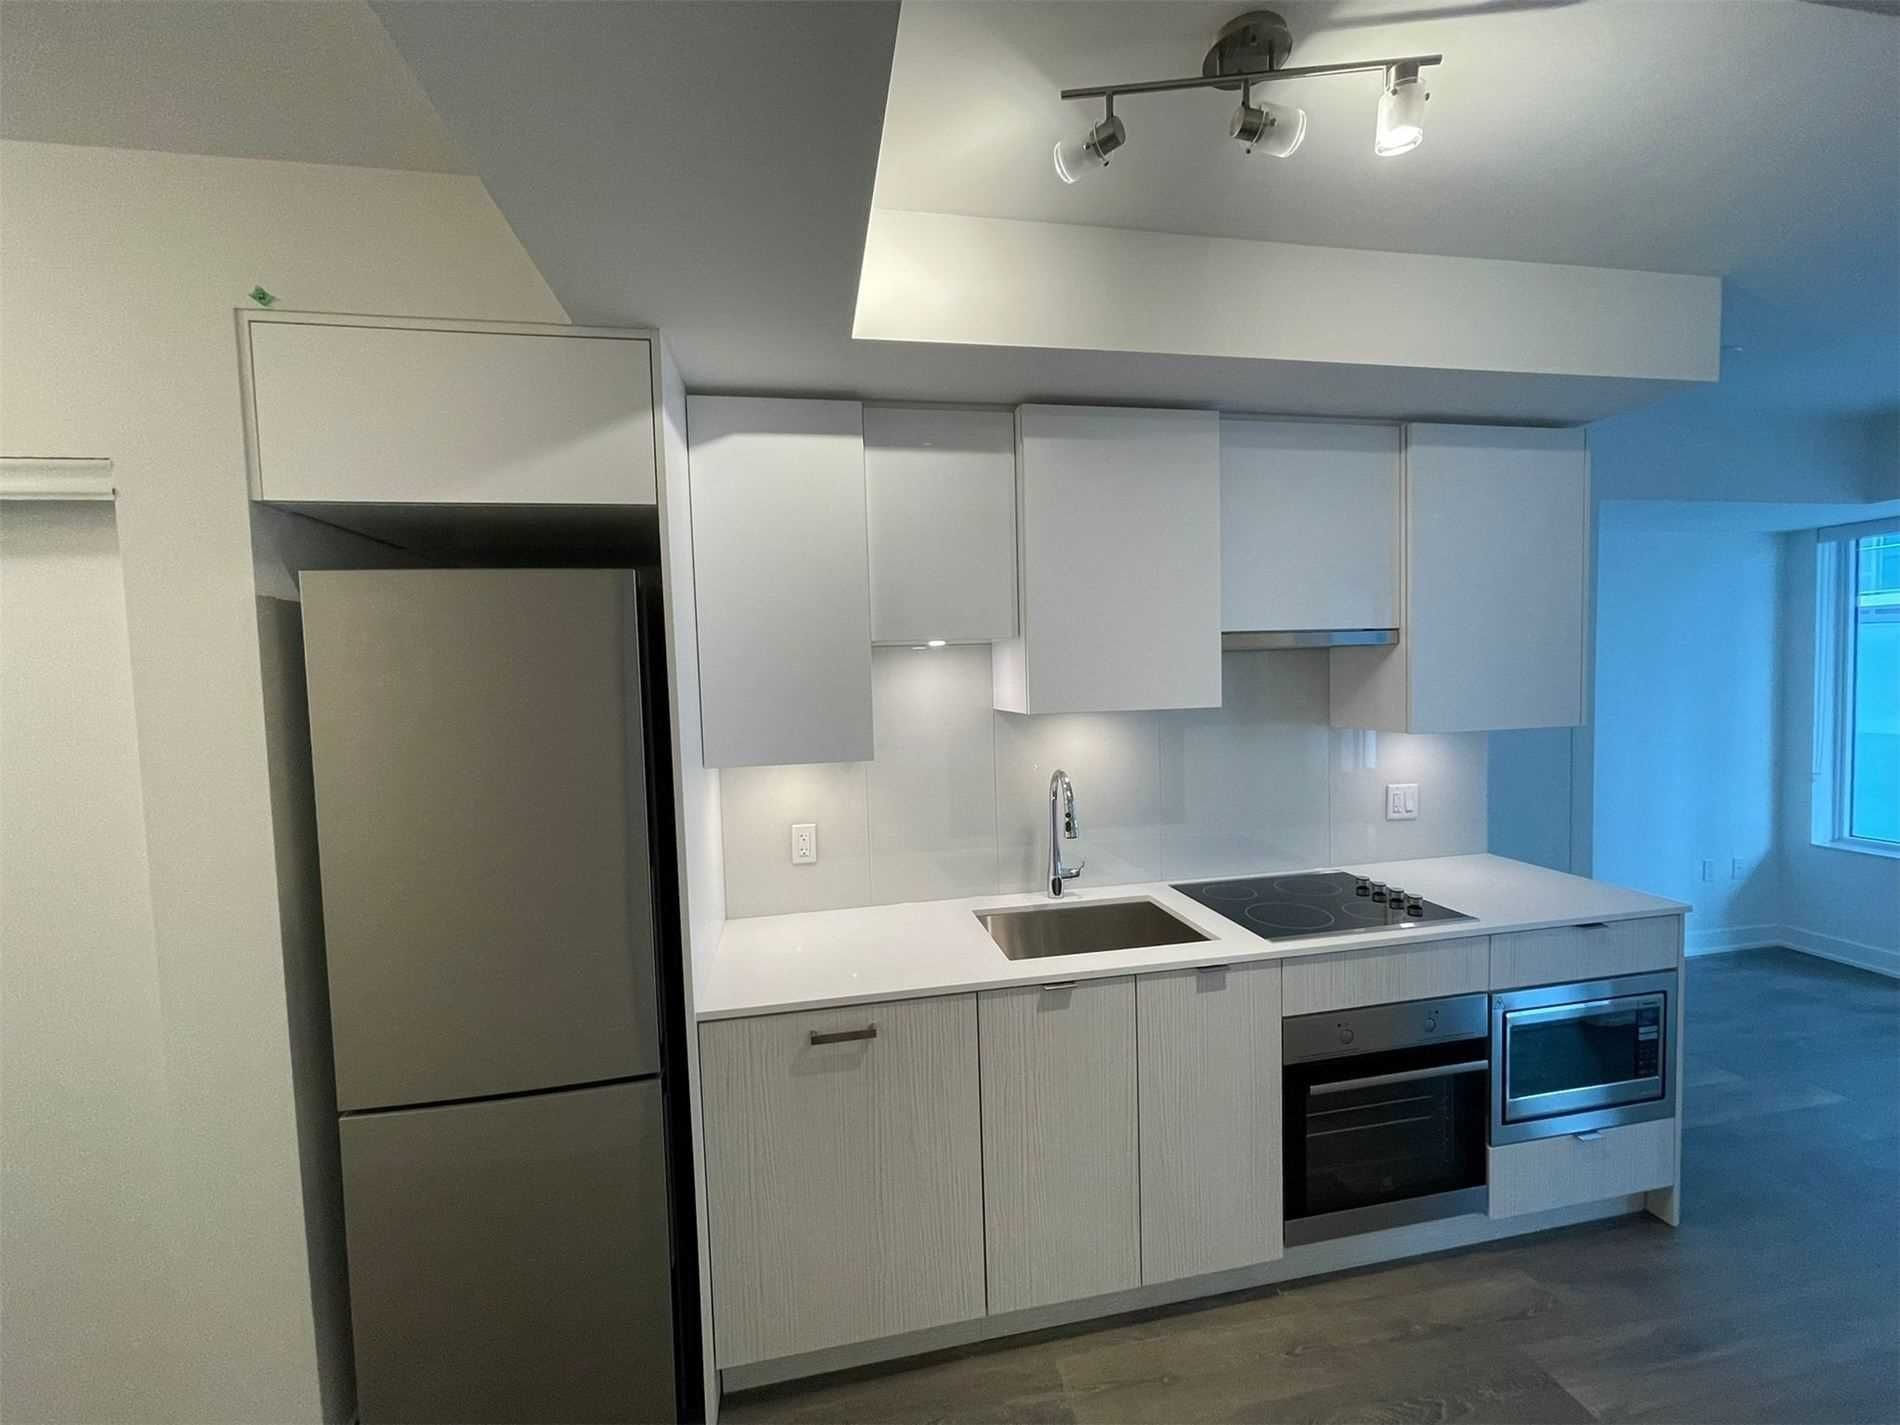 99 Broadway Ave, unit 1908 Nt for rent in Toronto - image #1